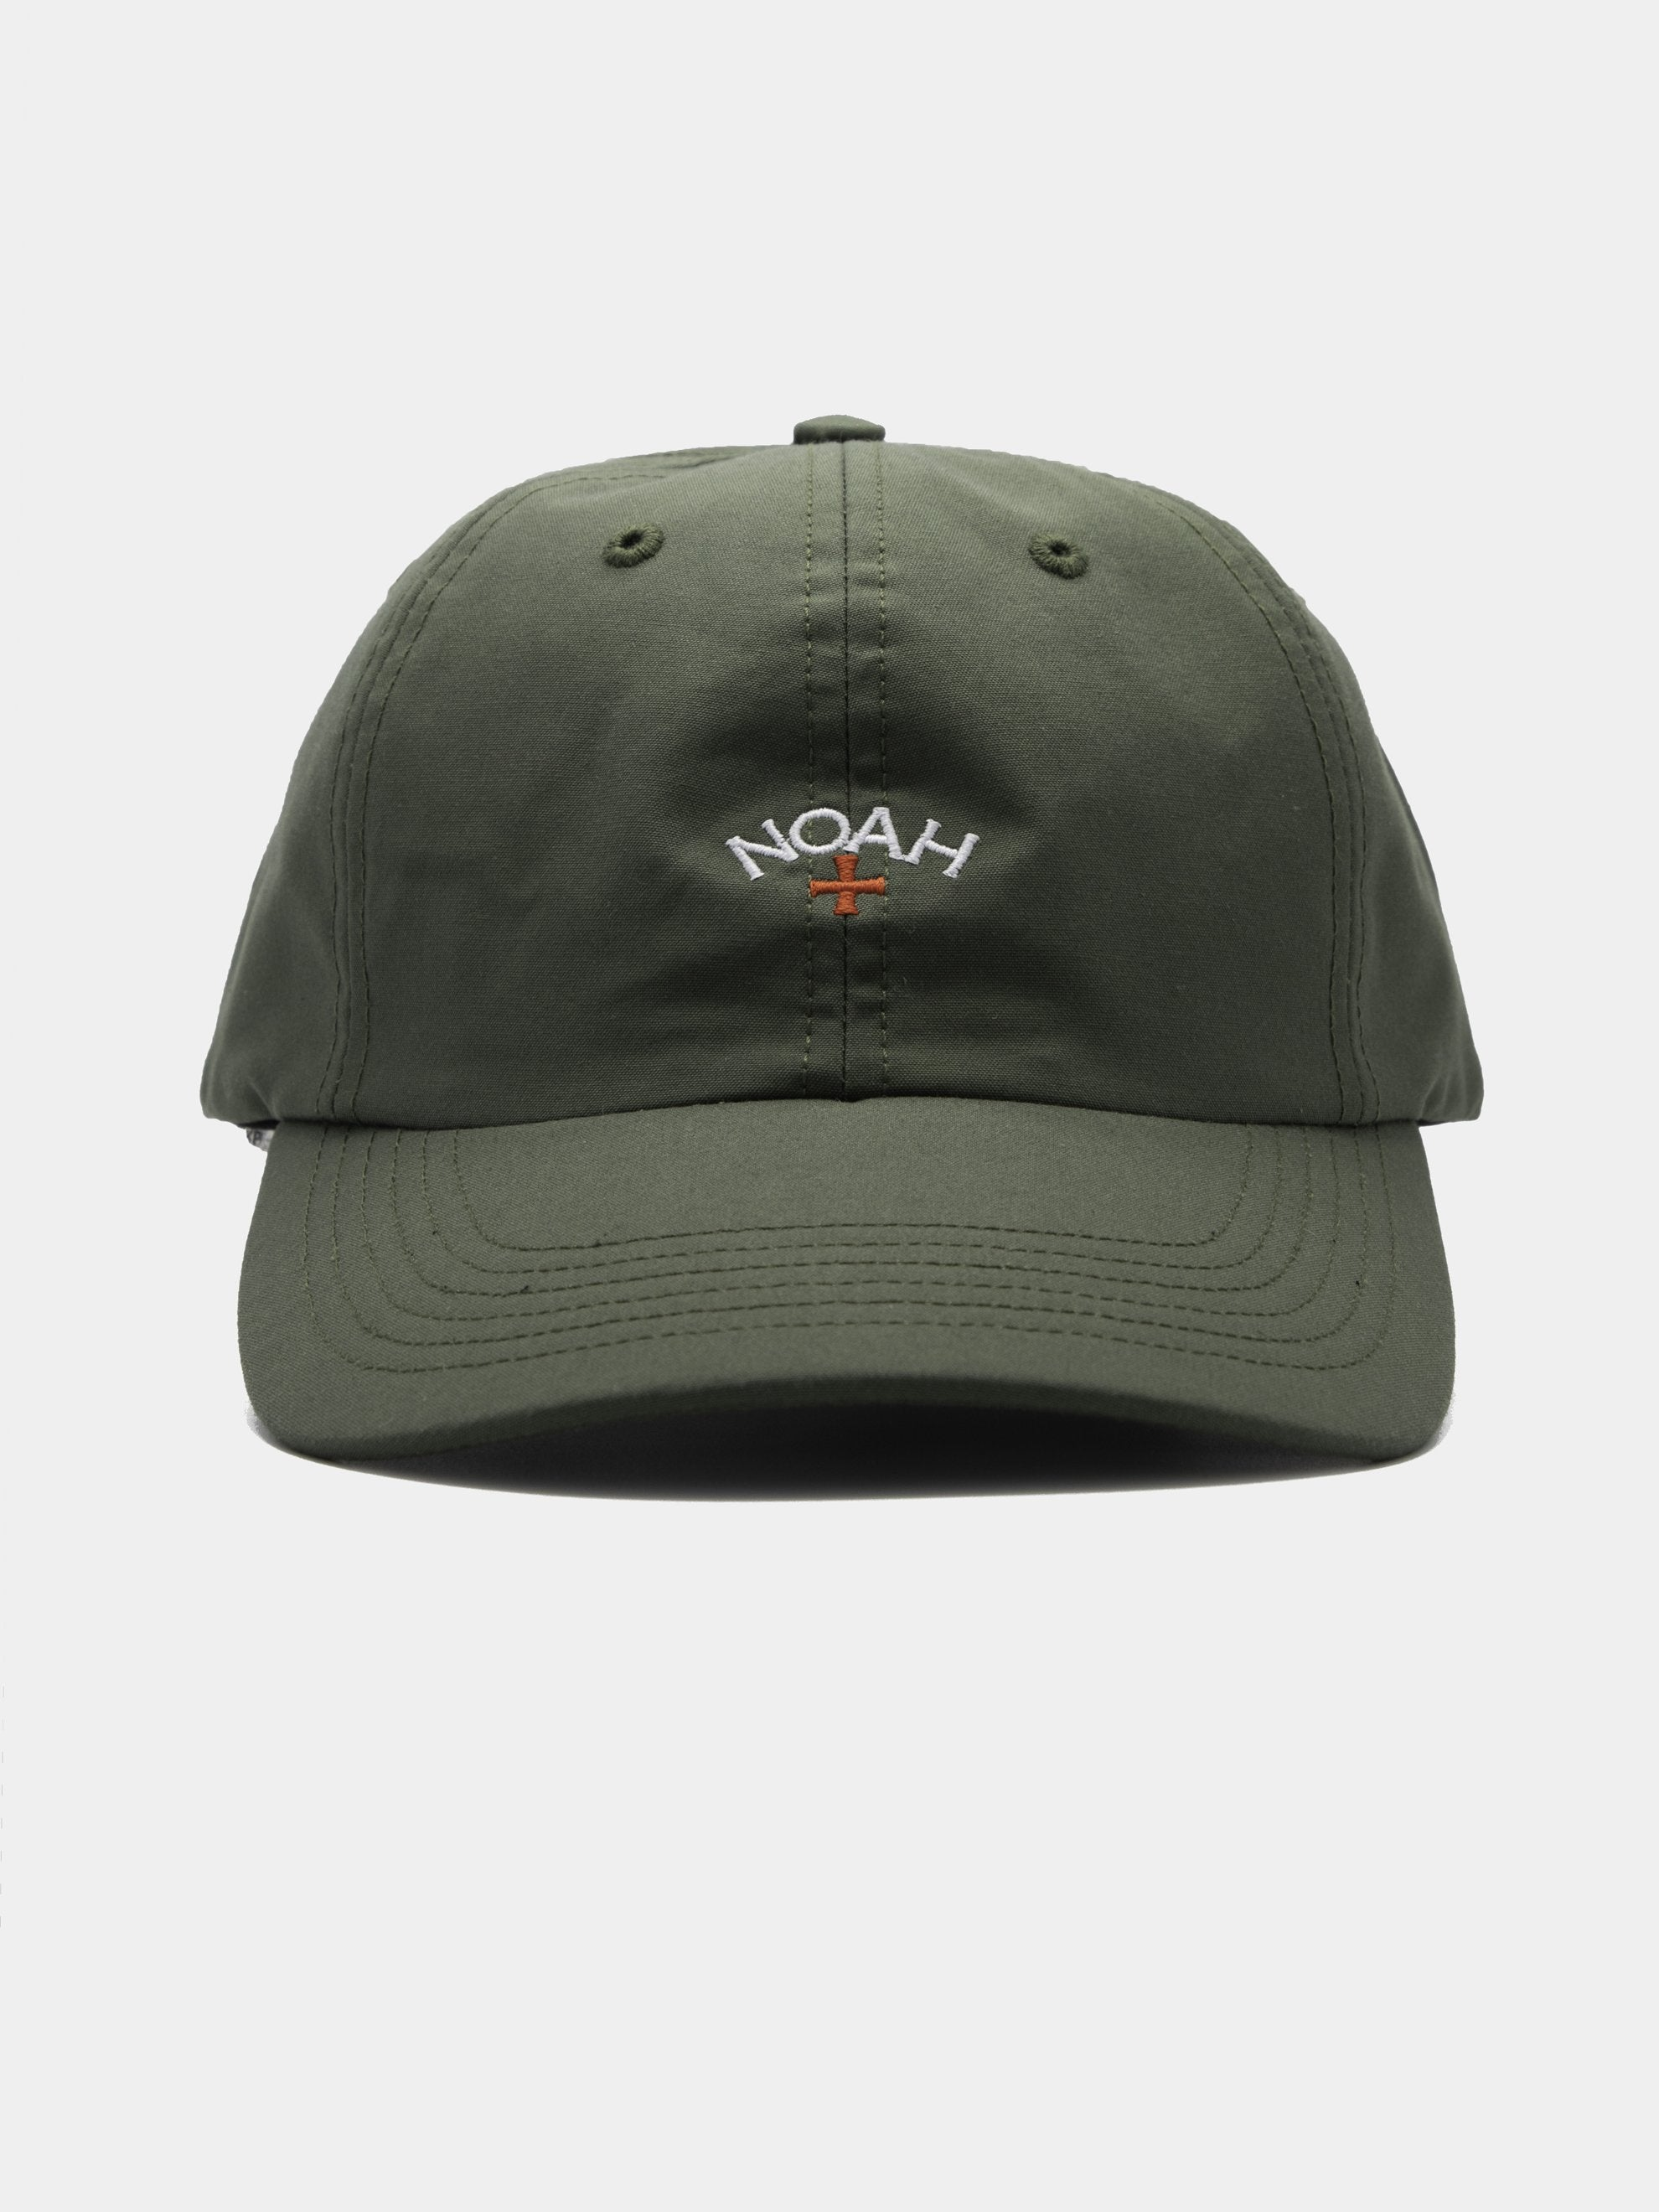 Buy NOAH Water Resistant Logo Cap Online at UNION LOS ANGELES 2431f67bfc3